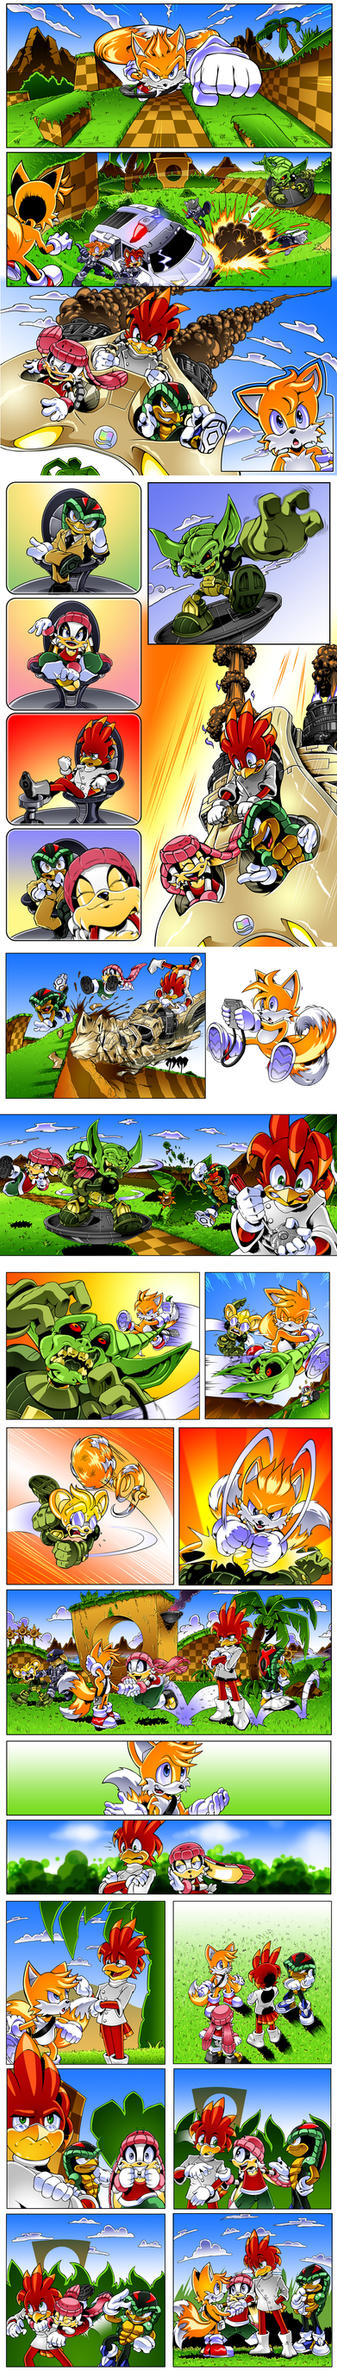 STC-O Tails_The Ultimax Page by spydaman